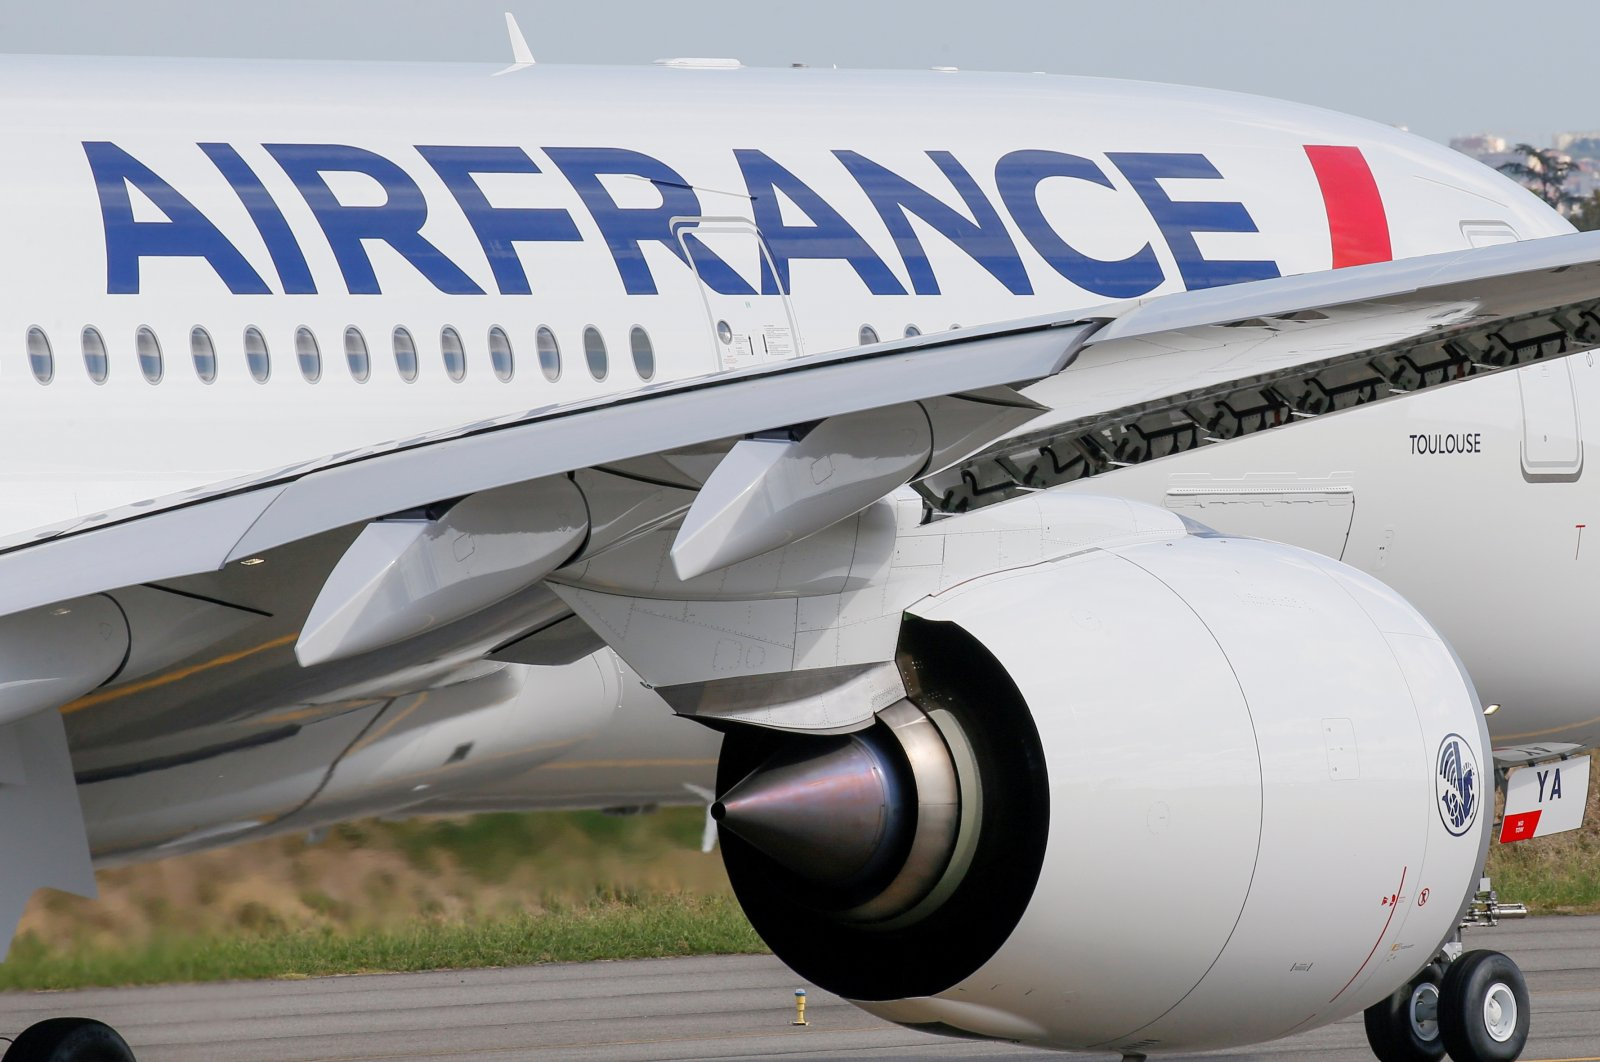 The first Air France airliner's Airbus A350 prepares to take off after a ceremony at the aircraft builder's headquarters in Colomiers near Toulouse, France, Sept. 27, 2019. (Reuters Photo)